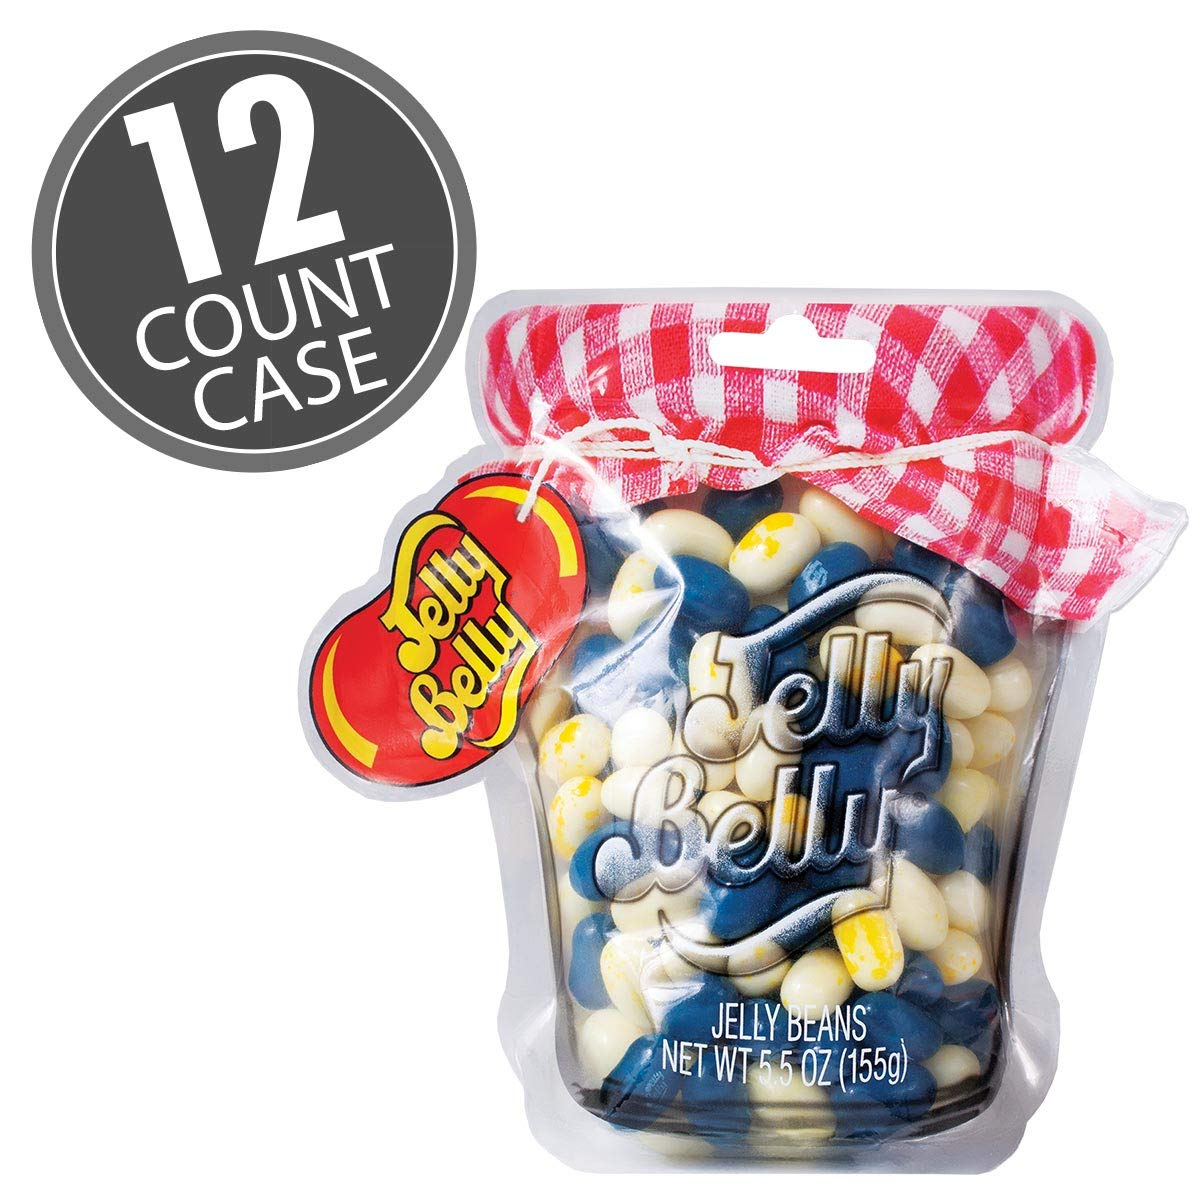 Jelly Belly Blueberry Muffin Award-winning store Mix Mason oz Bag Count 5.5 Jar 12 Inventory cleanup selling sale